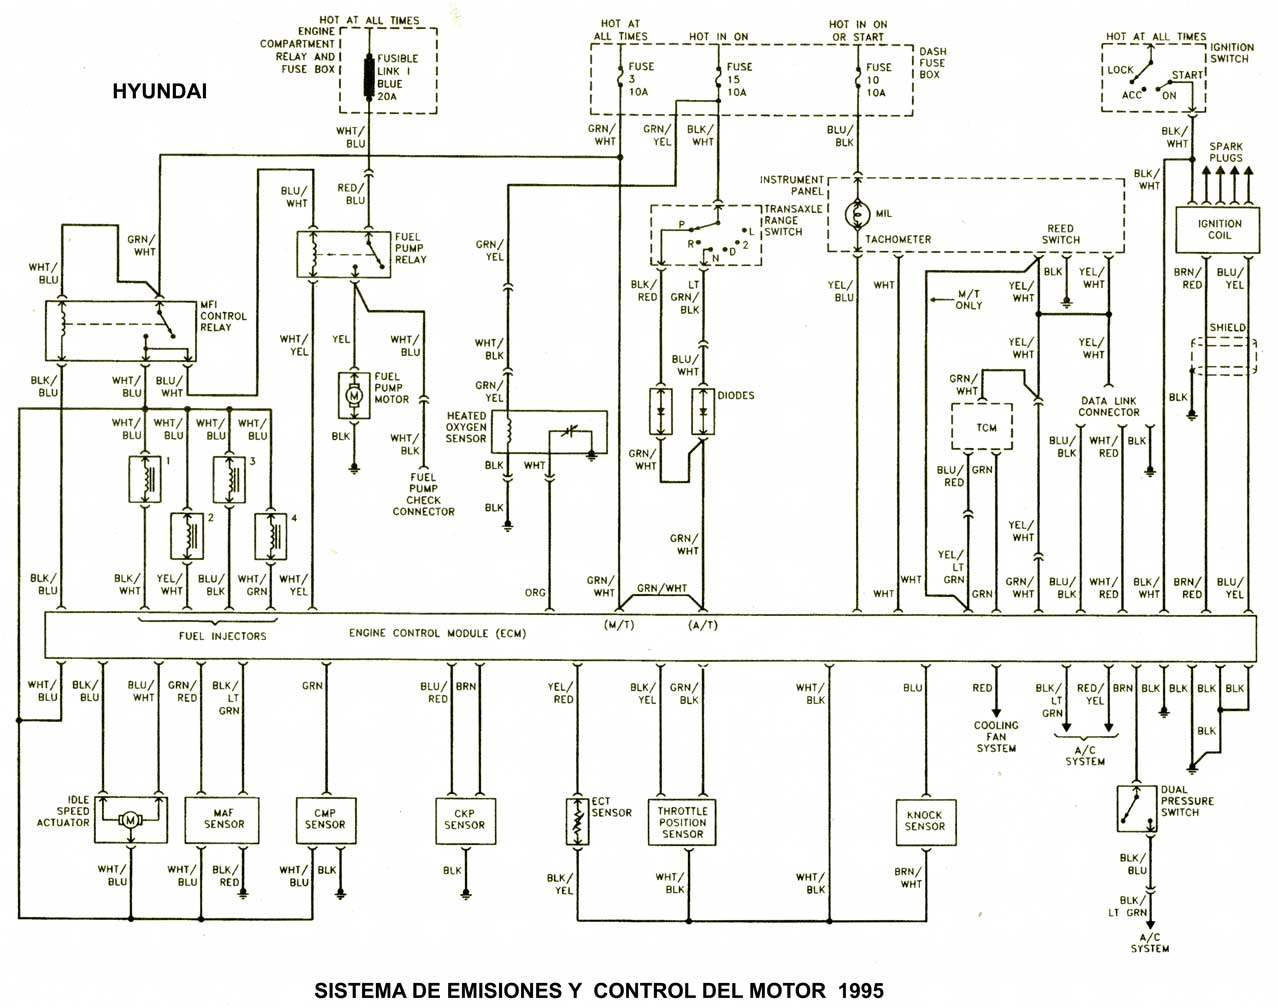 Gmc Fuse Box Wiring Diagram 1985 Serra 1500. Location